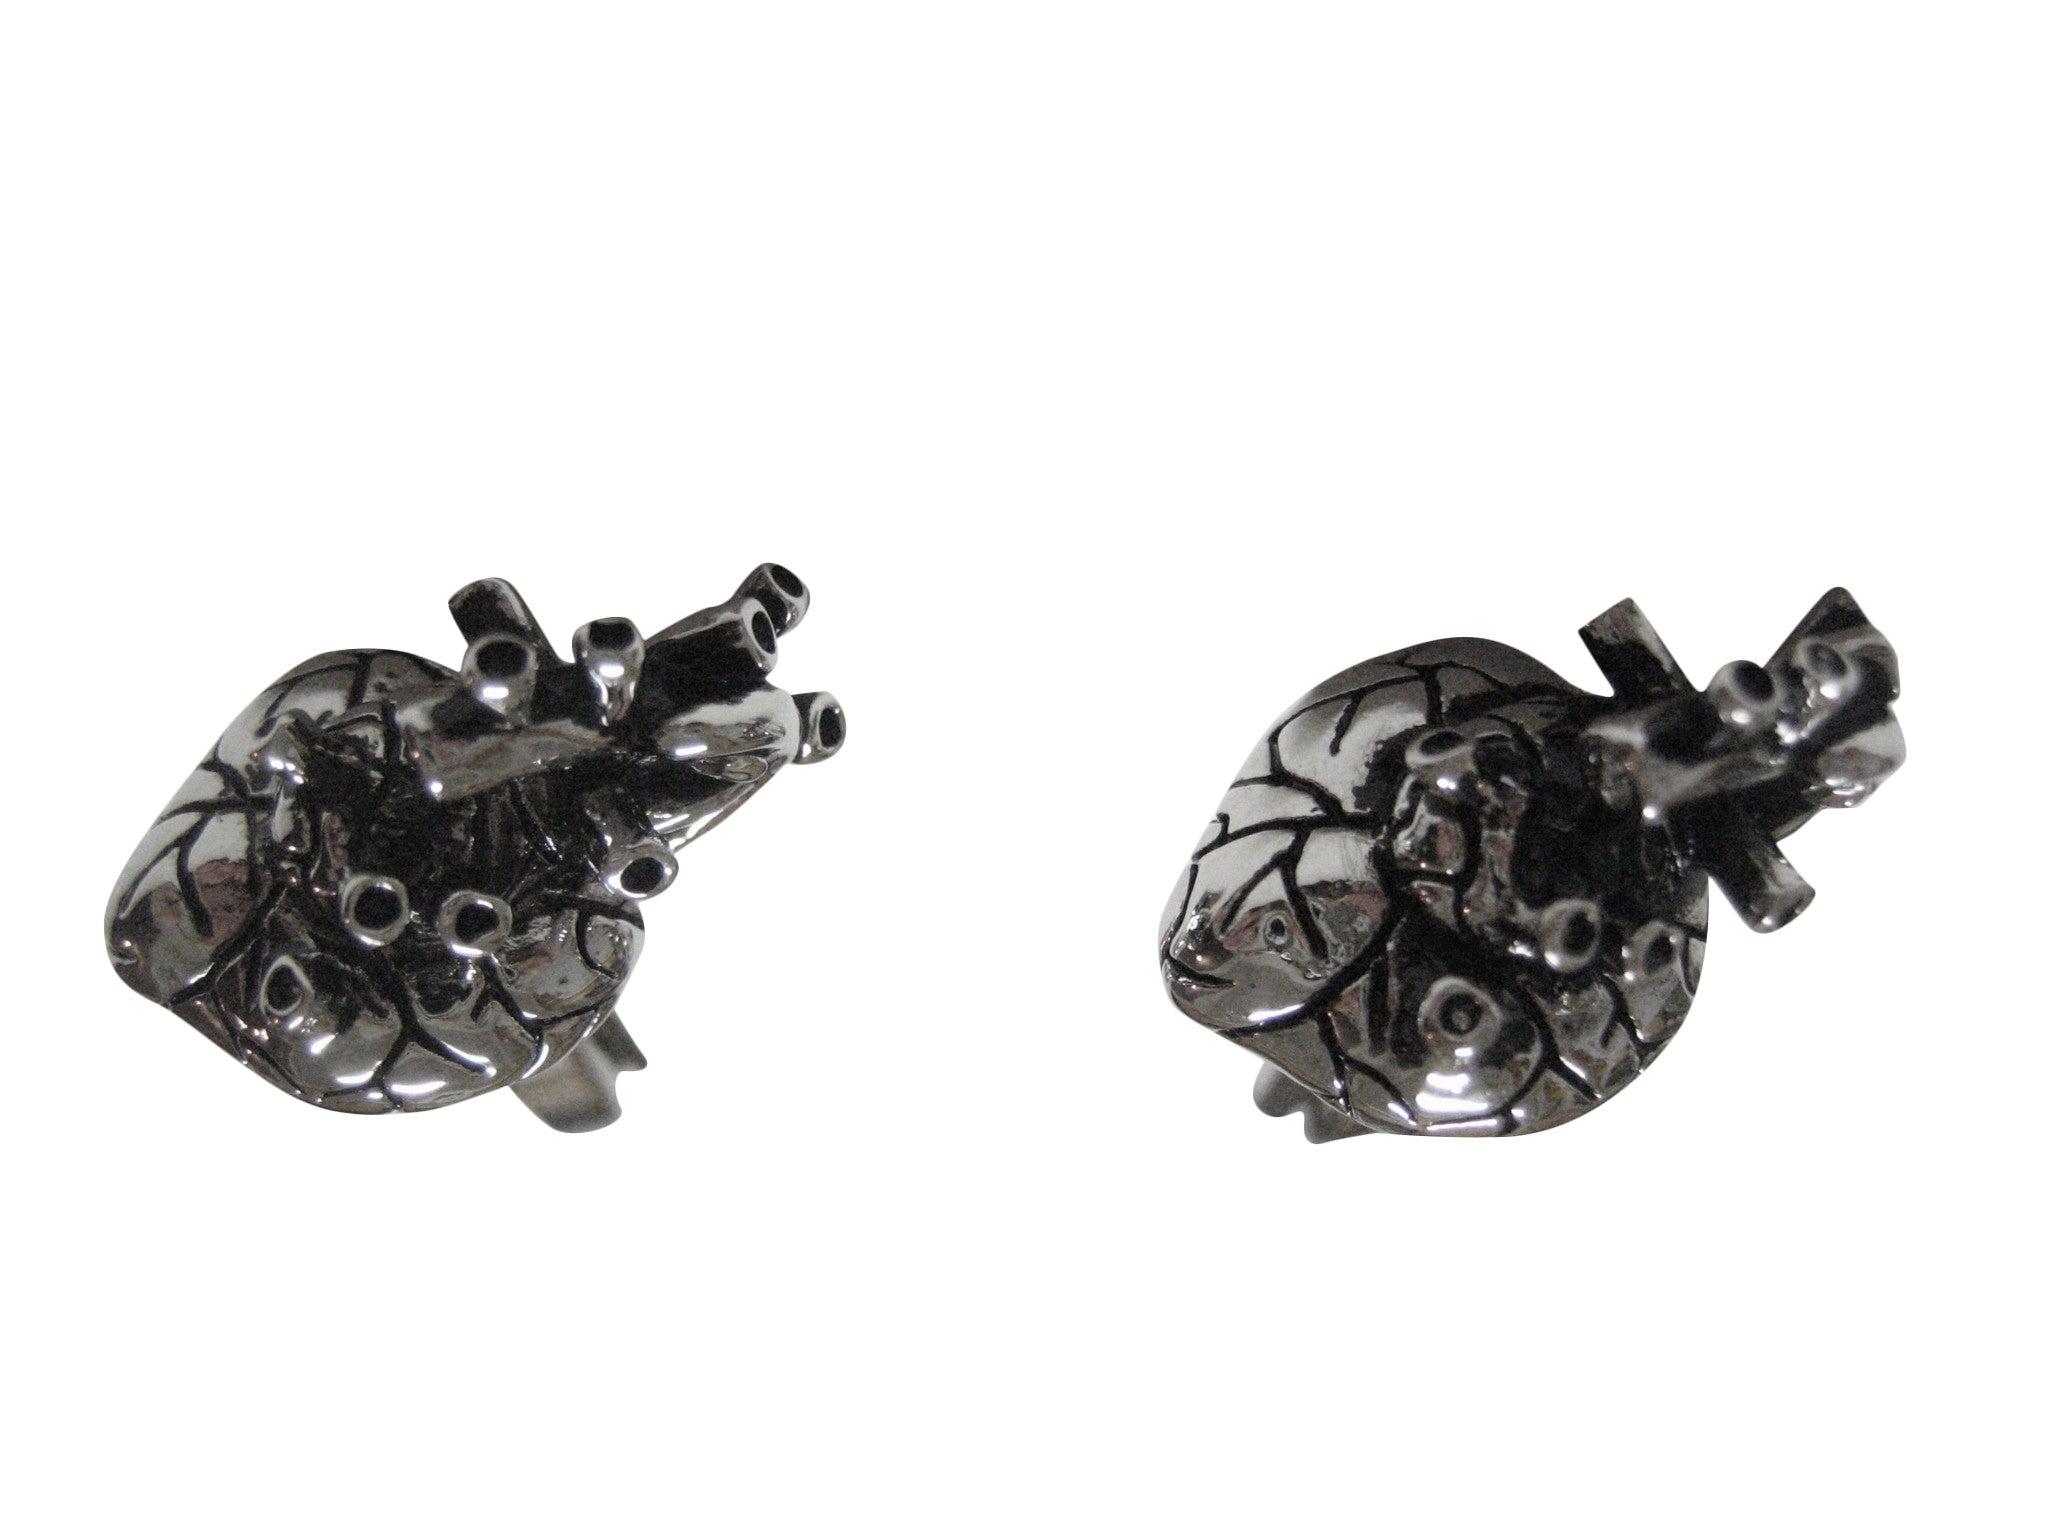 Silver Toned Anatomical Heart Cufflinks